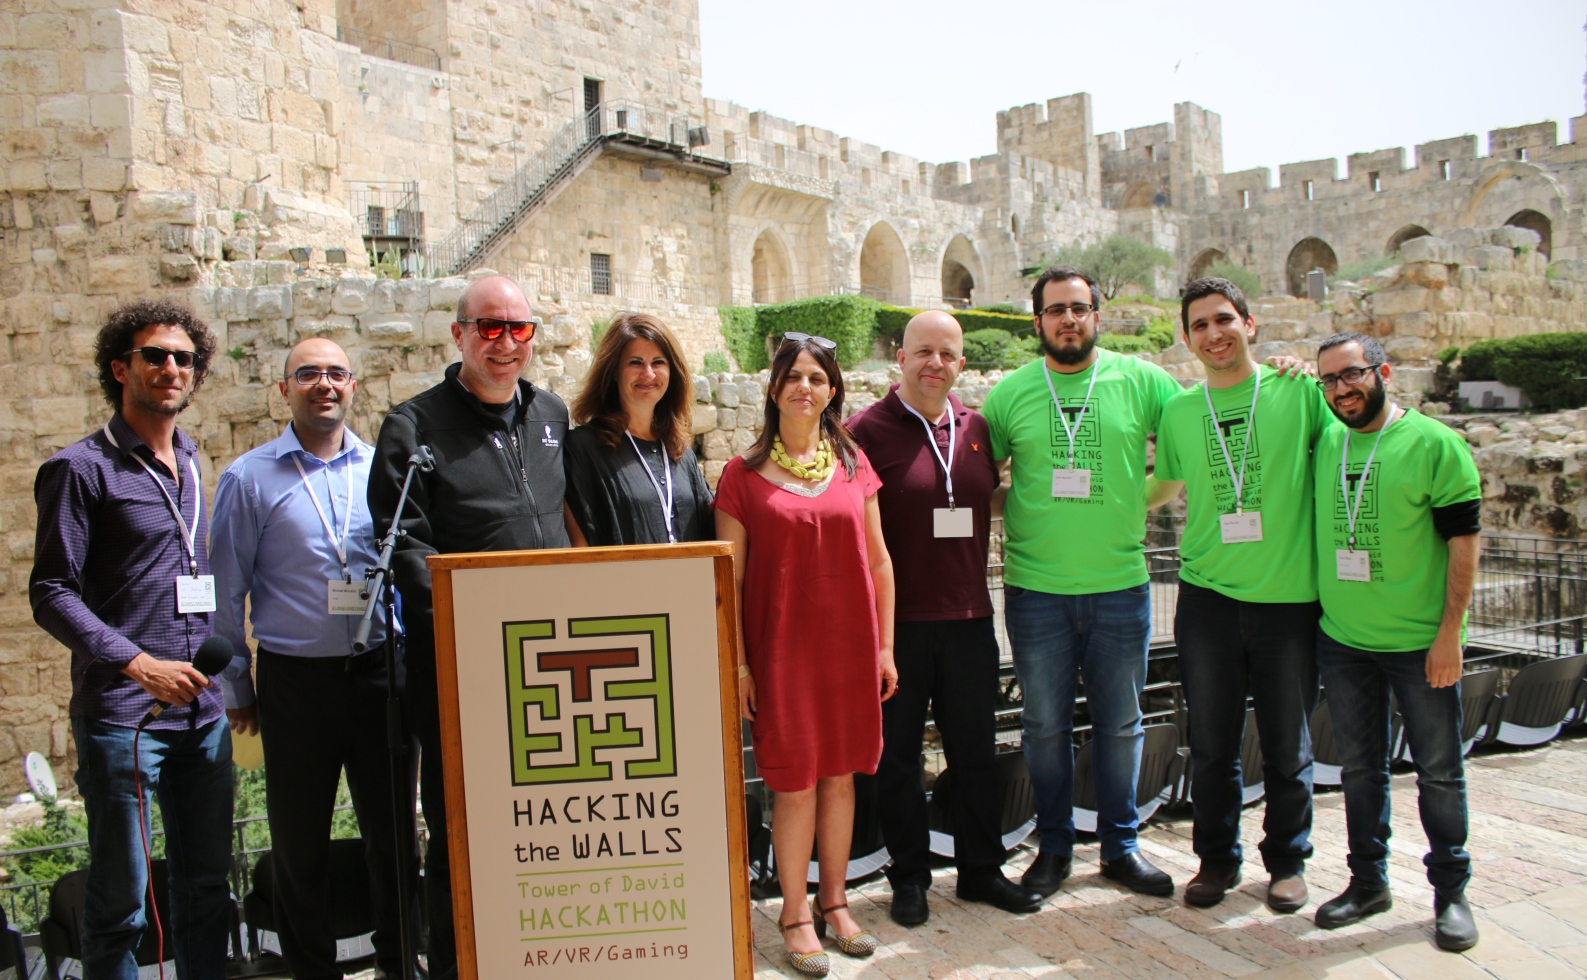 From left, Doron Ish Shalom, Michael Mizrahi, Elie Wurtman, Sarah Kass, Eilat Lieber, Itzik Ozer and third-place Hacking the Walls winner Clusteron. Photo courtesy of the Tower of David Museum